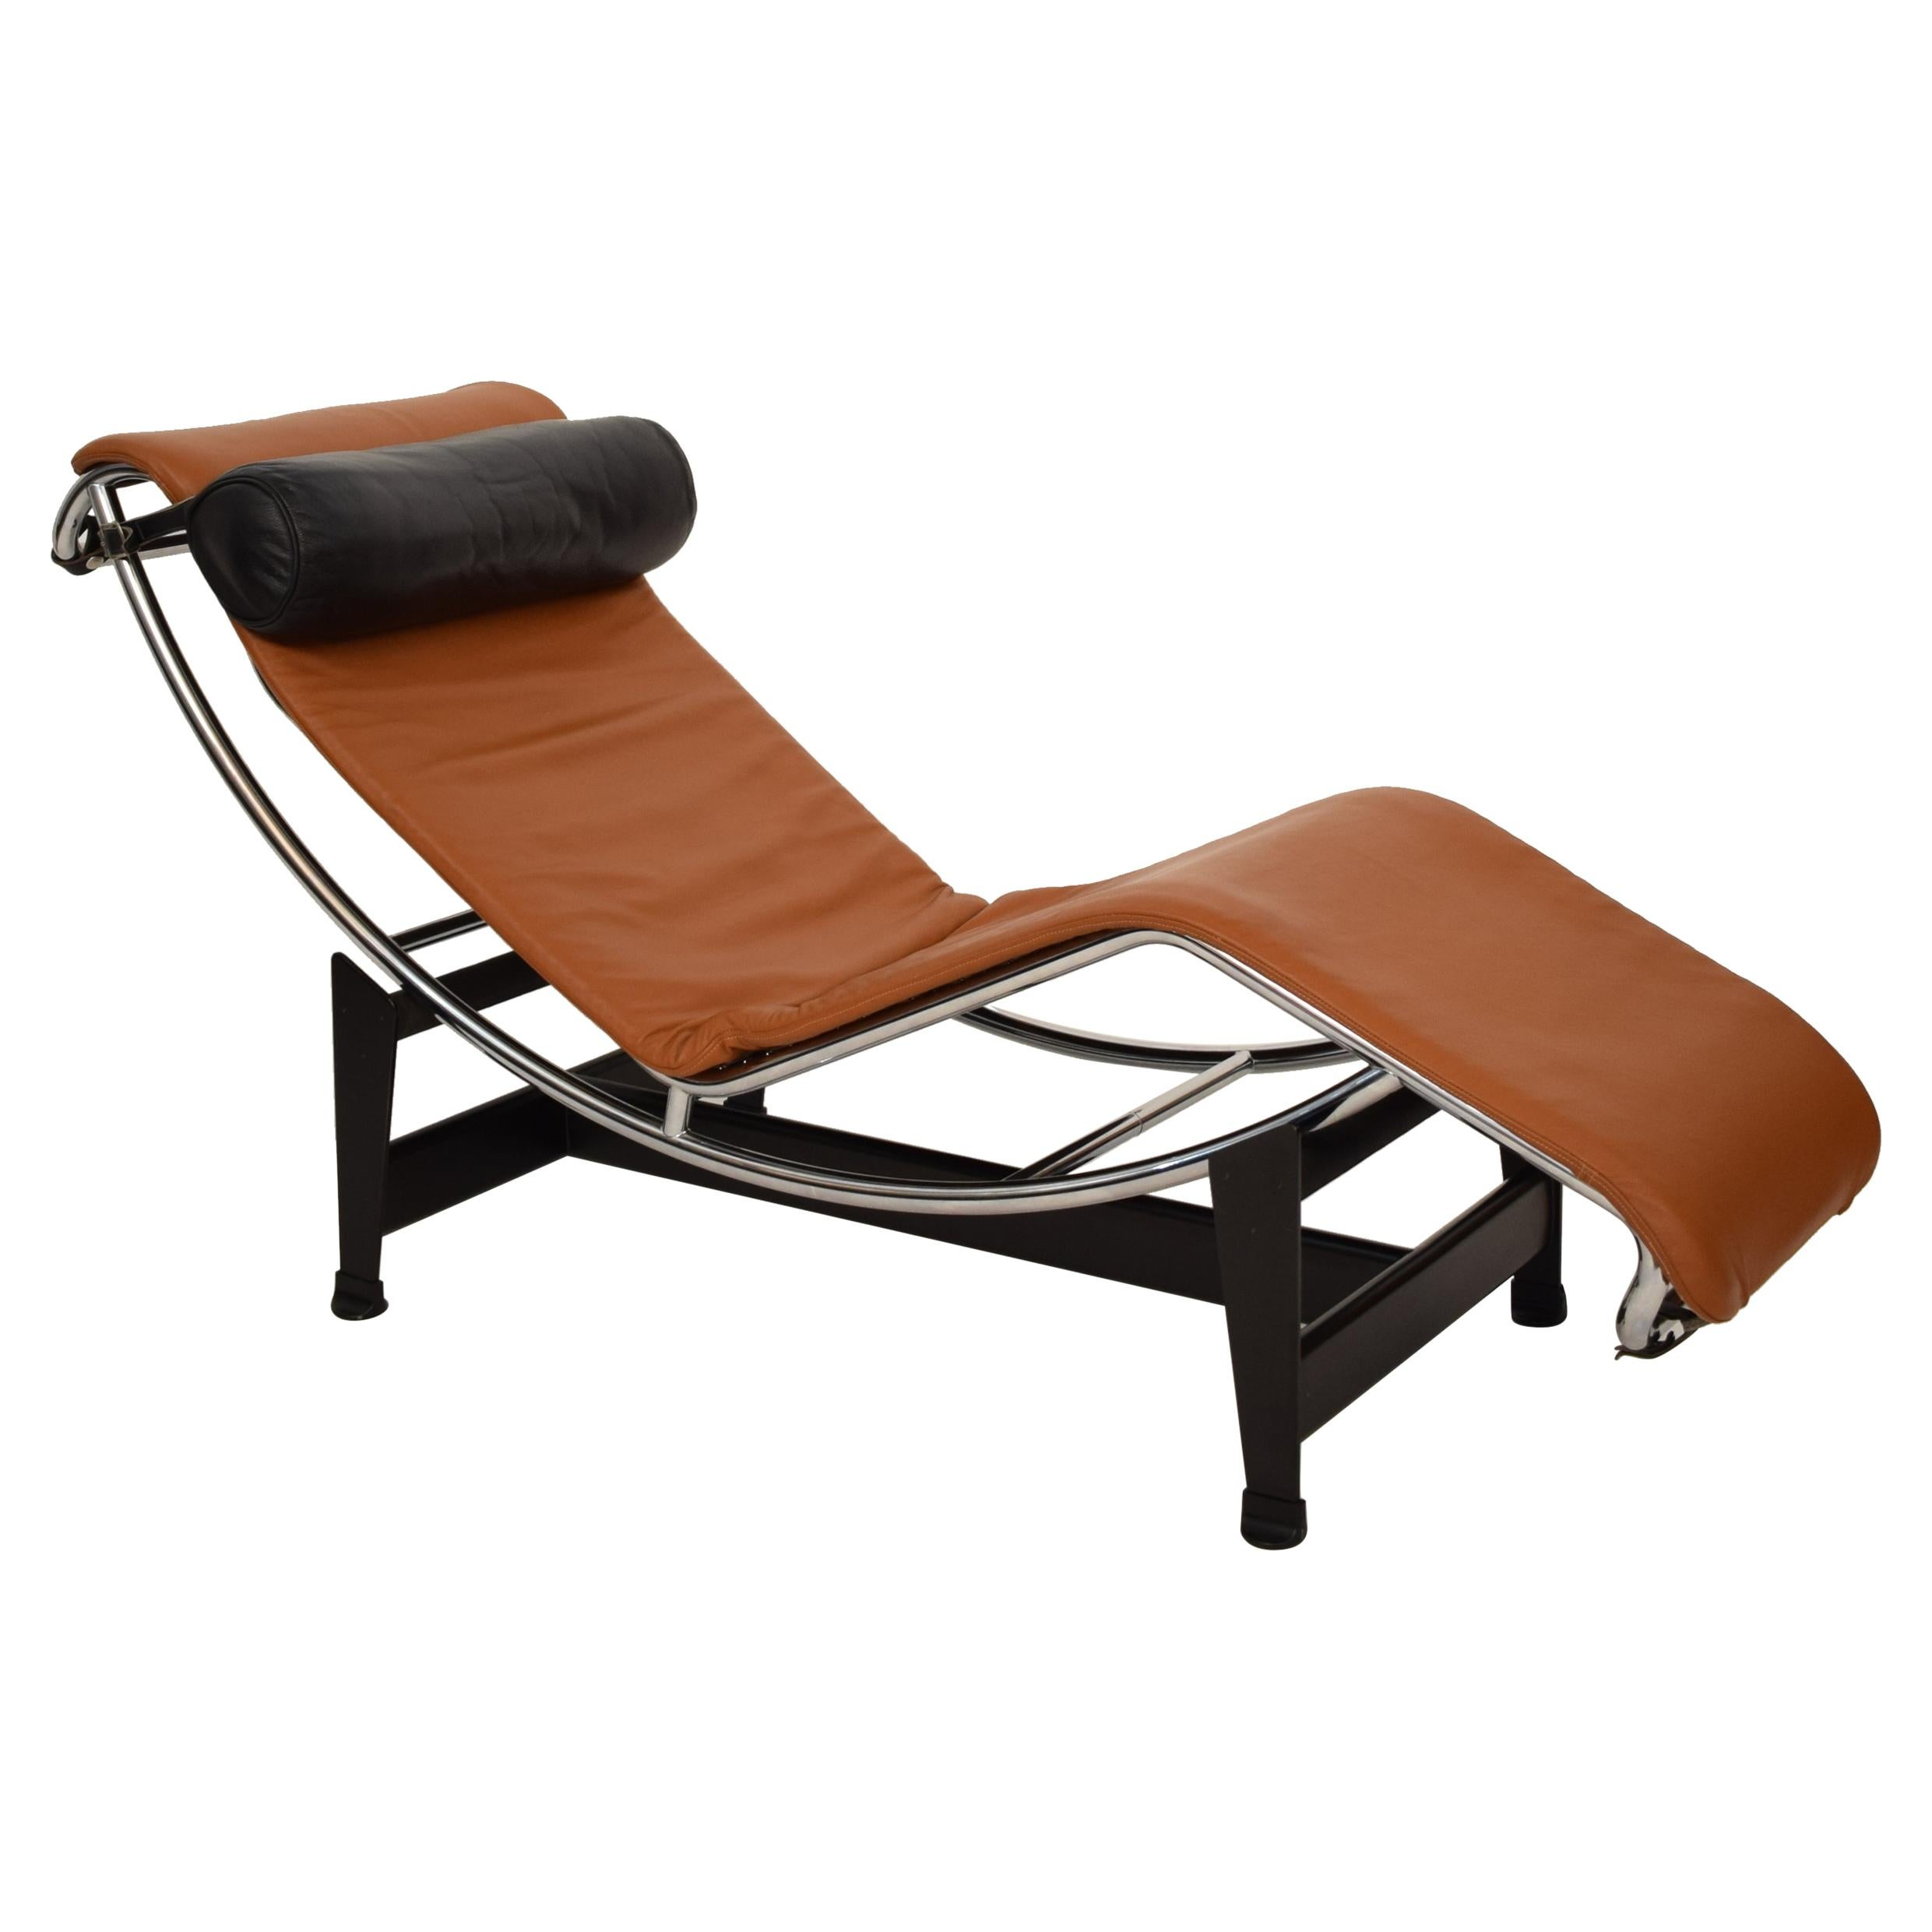 LC6 Chaise Lounge Leather by Charlotte Perriand and Le Corbusier, for  Cassina